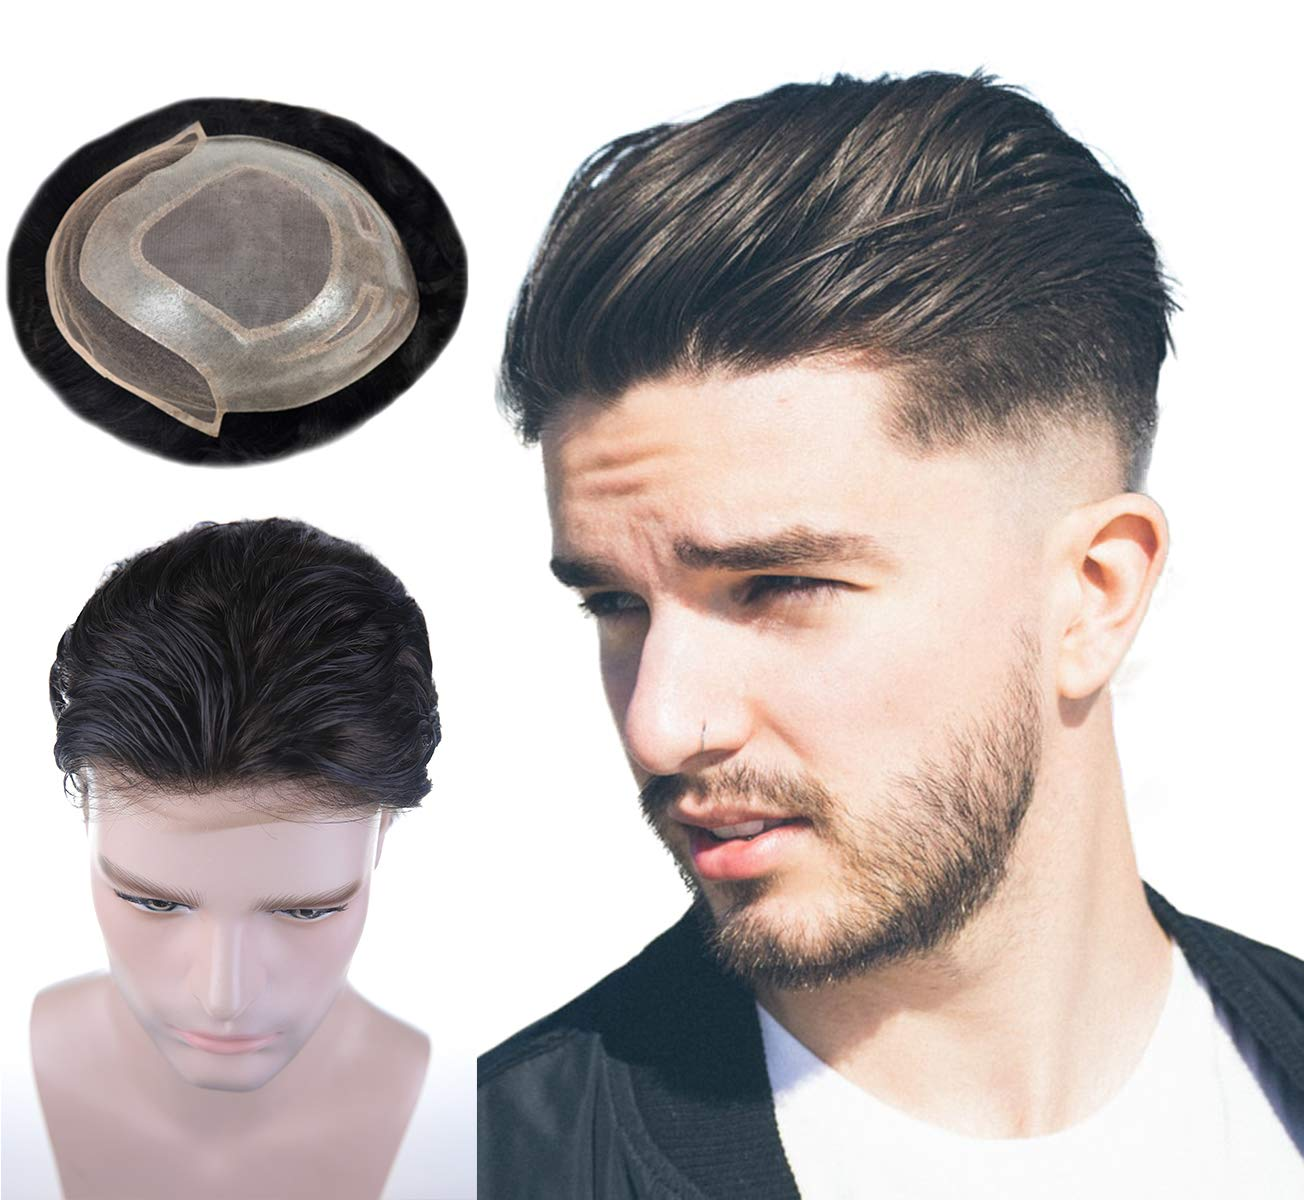 Human Hair Toupee for Men Mono Top with PU Skin around and Lace Front, LLWear 8x10 Inch Mens Hair Piece Replacement System Natural Wave Off Black(#1b) by LLWear